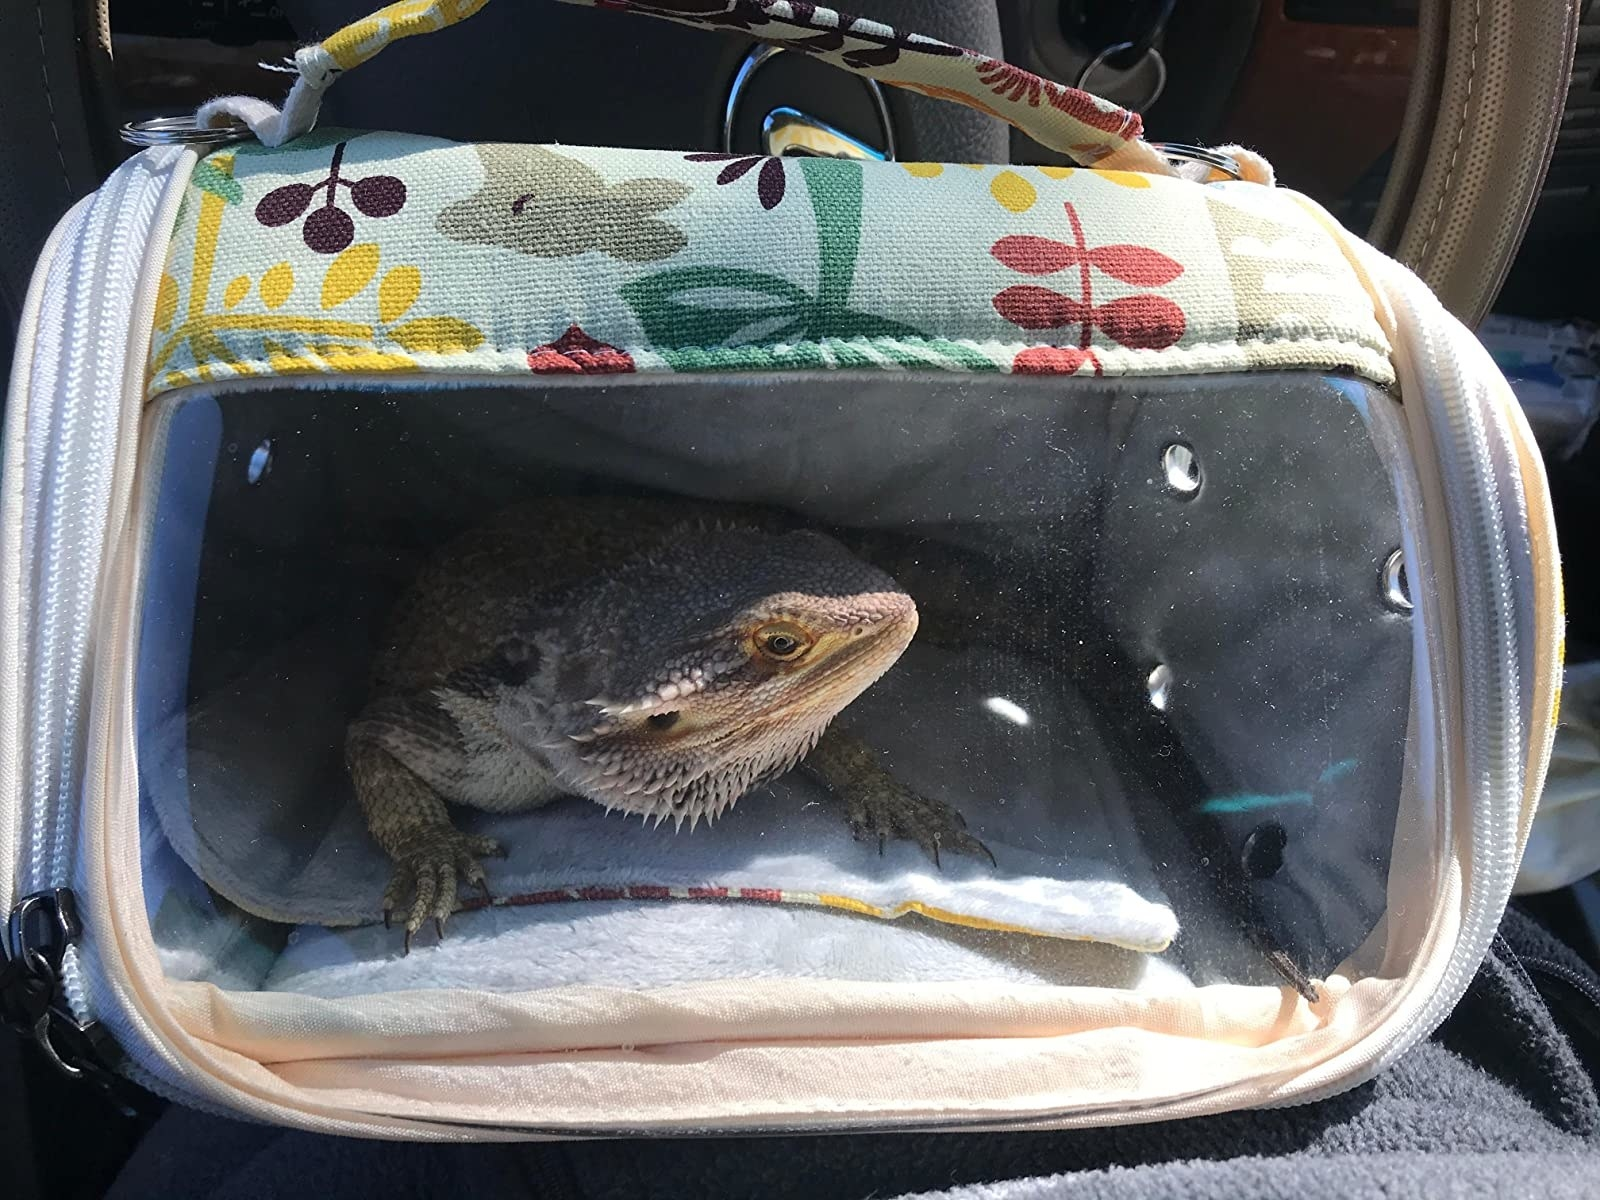 A lizard in the carrier